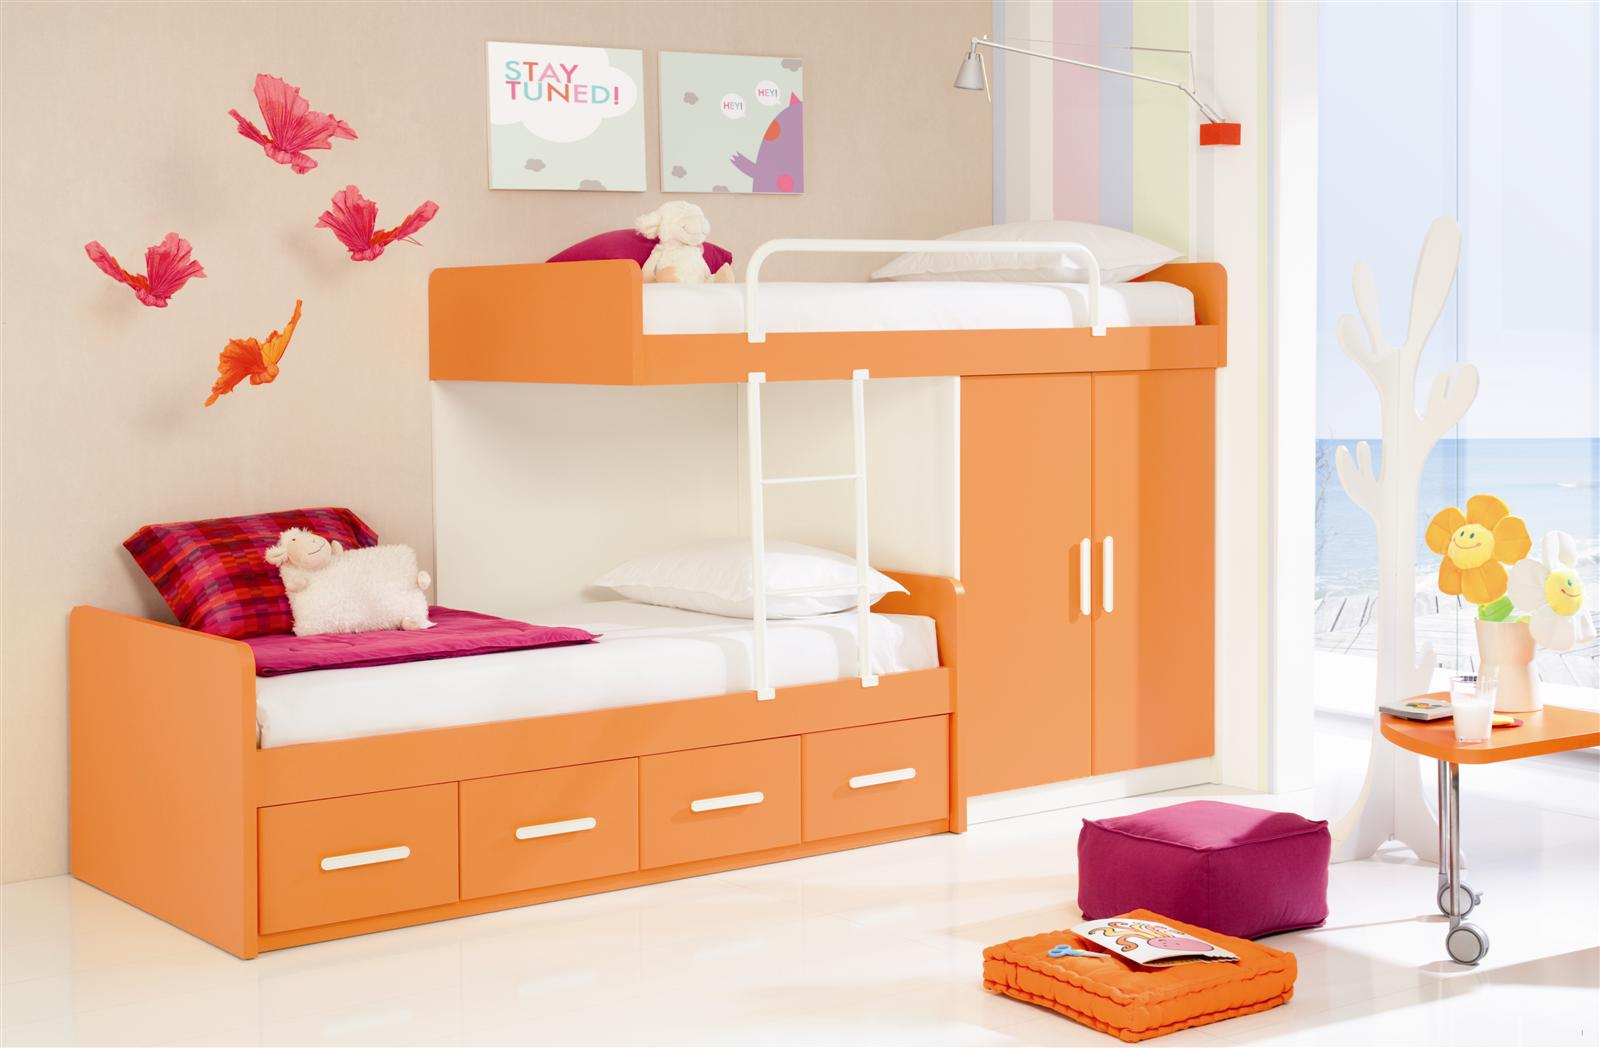 orange-color-wooden-bunk-bed-and-white-metal-ladder-also-barriers-and-storage-drawers-under-bed-also-small-wardrobe-underneath-and-white-color-covered-kids-bedroom-paint-ideas